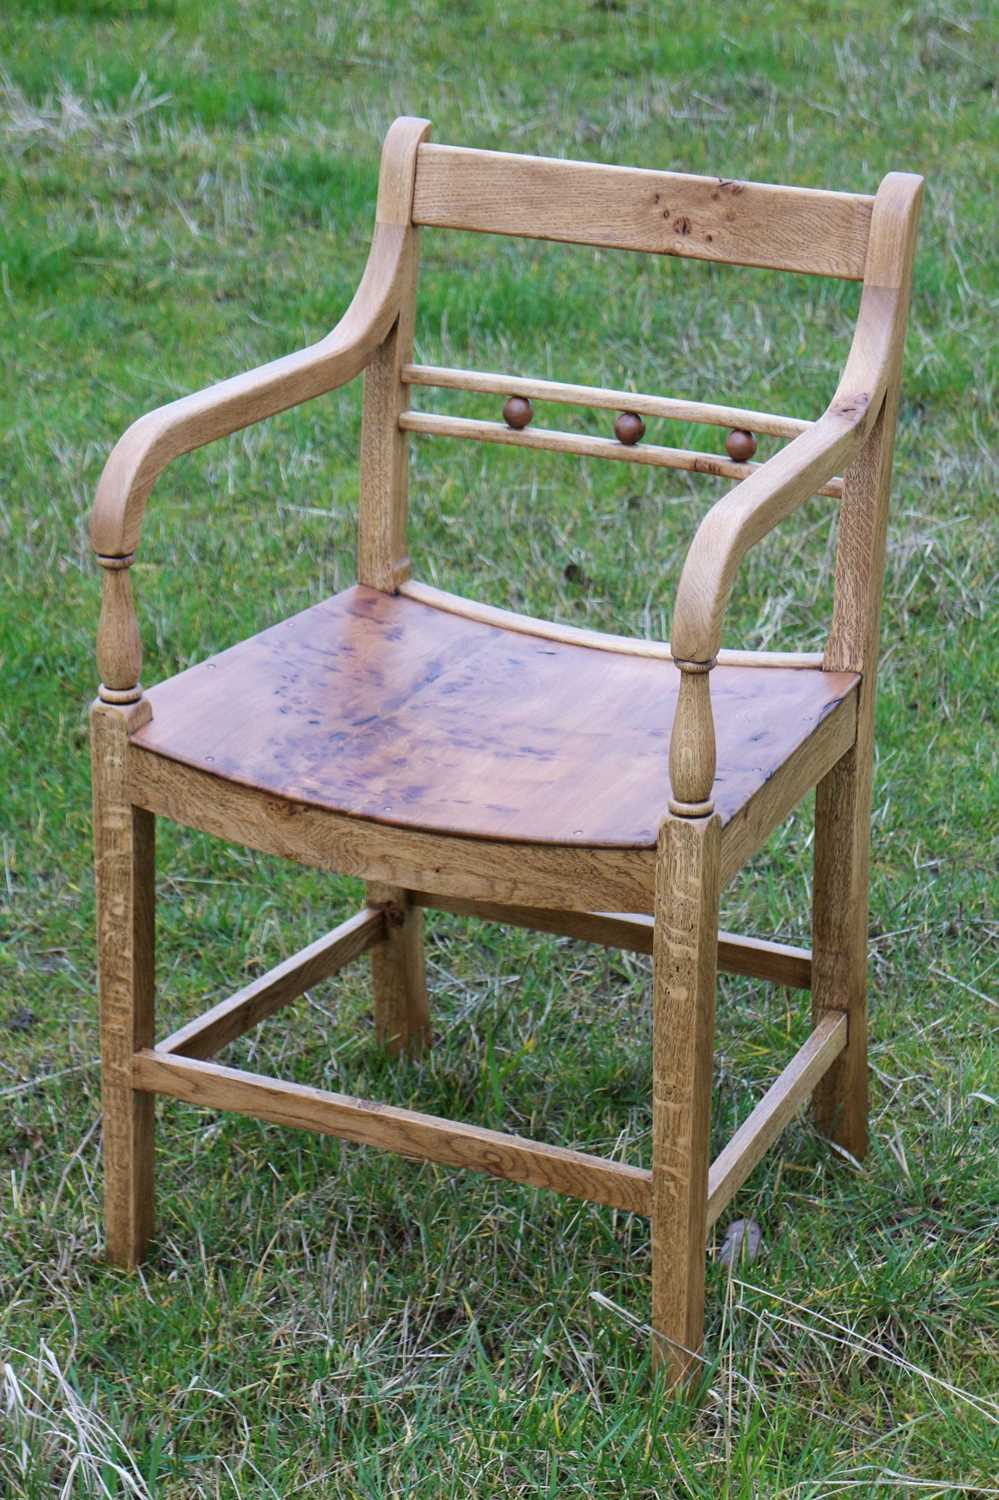 Otis Luxton Hand Crafted Suffolk Ball-Back Chair The ball-back chair is unique within traditional